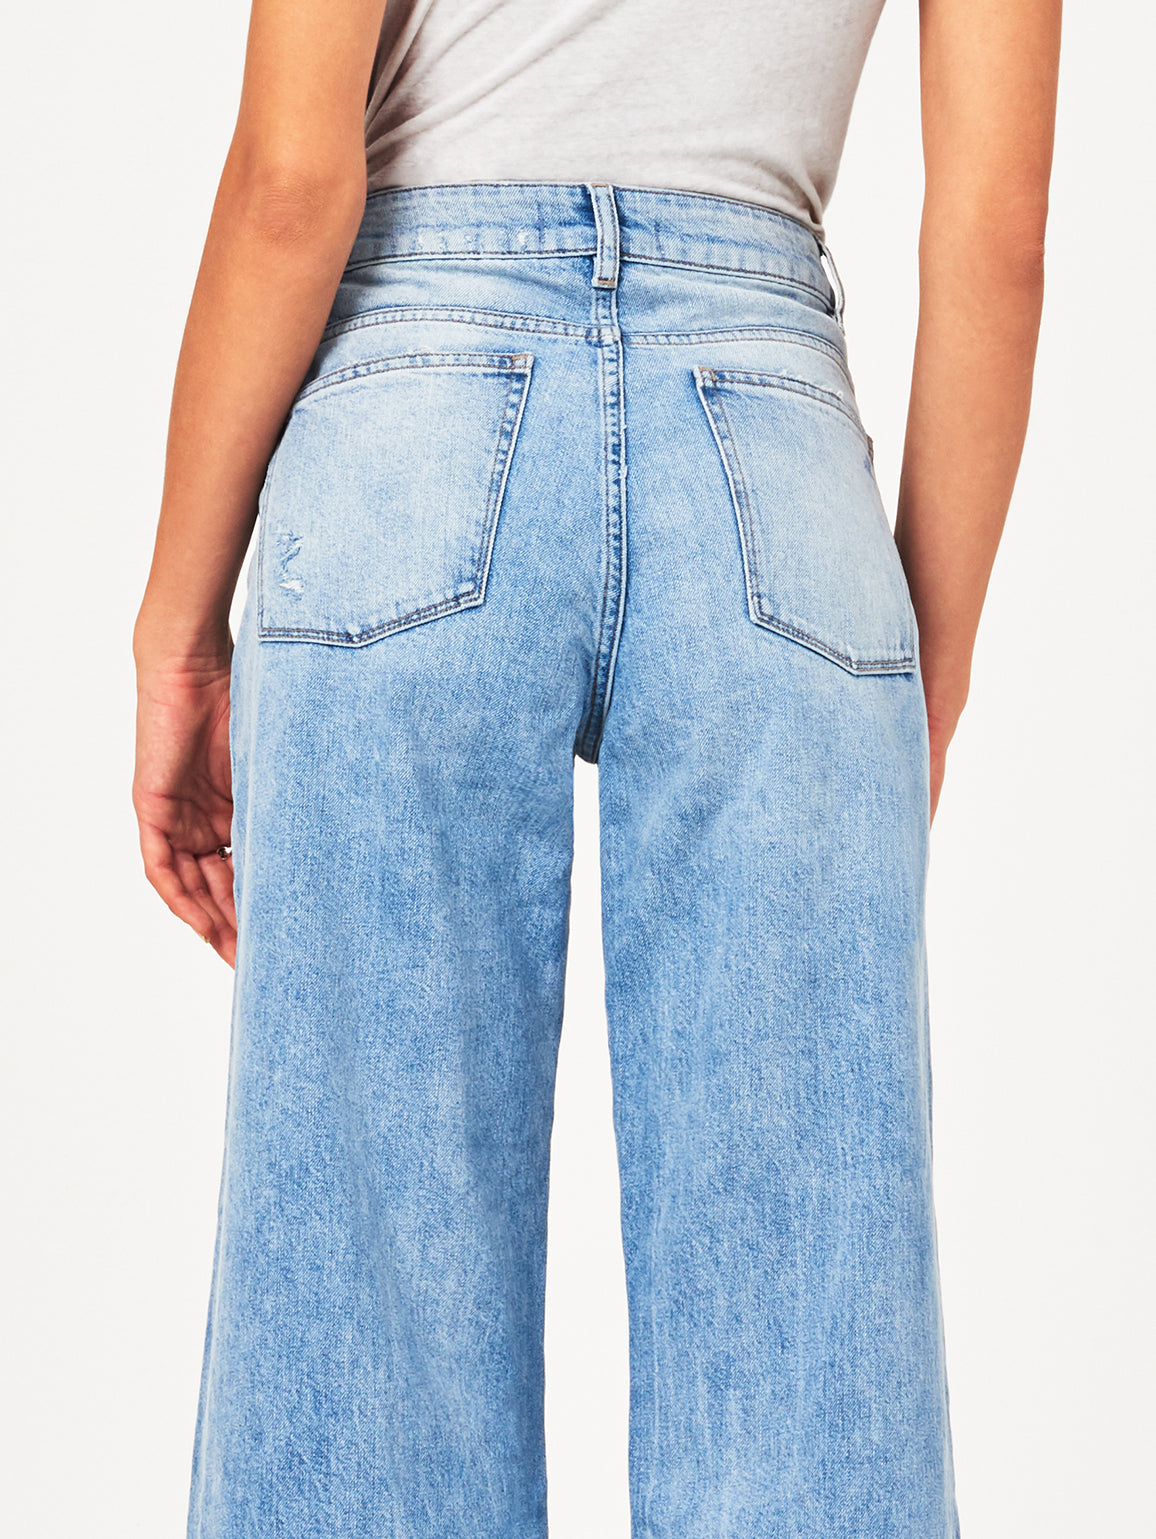 Hepburn High Rise Wide Leg | Oldtown DL 1961 Denim